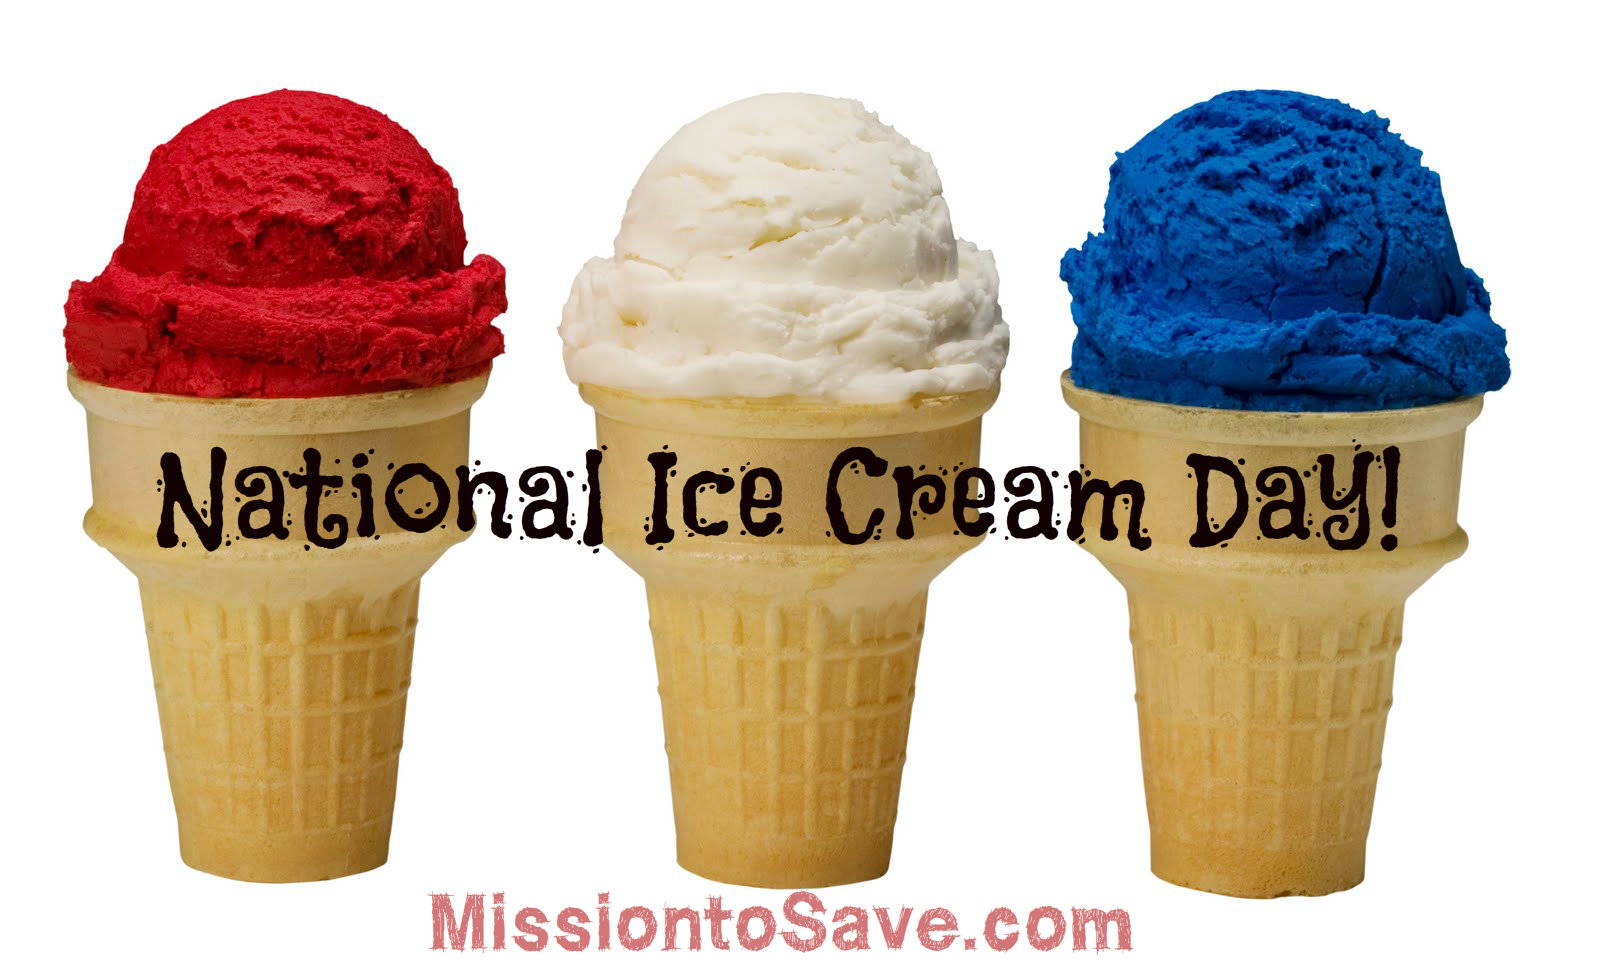 National Ice Cream Day Deals 2016